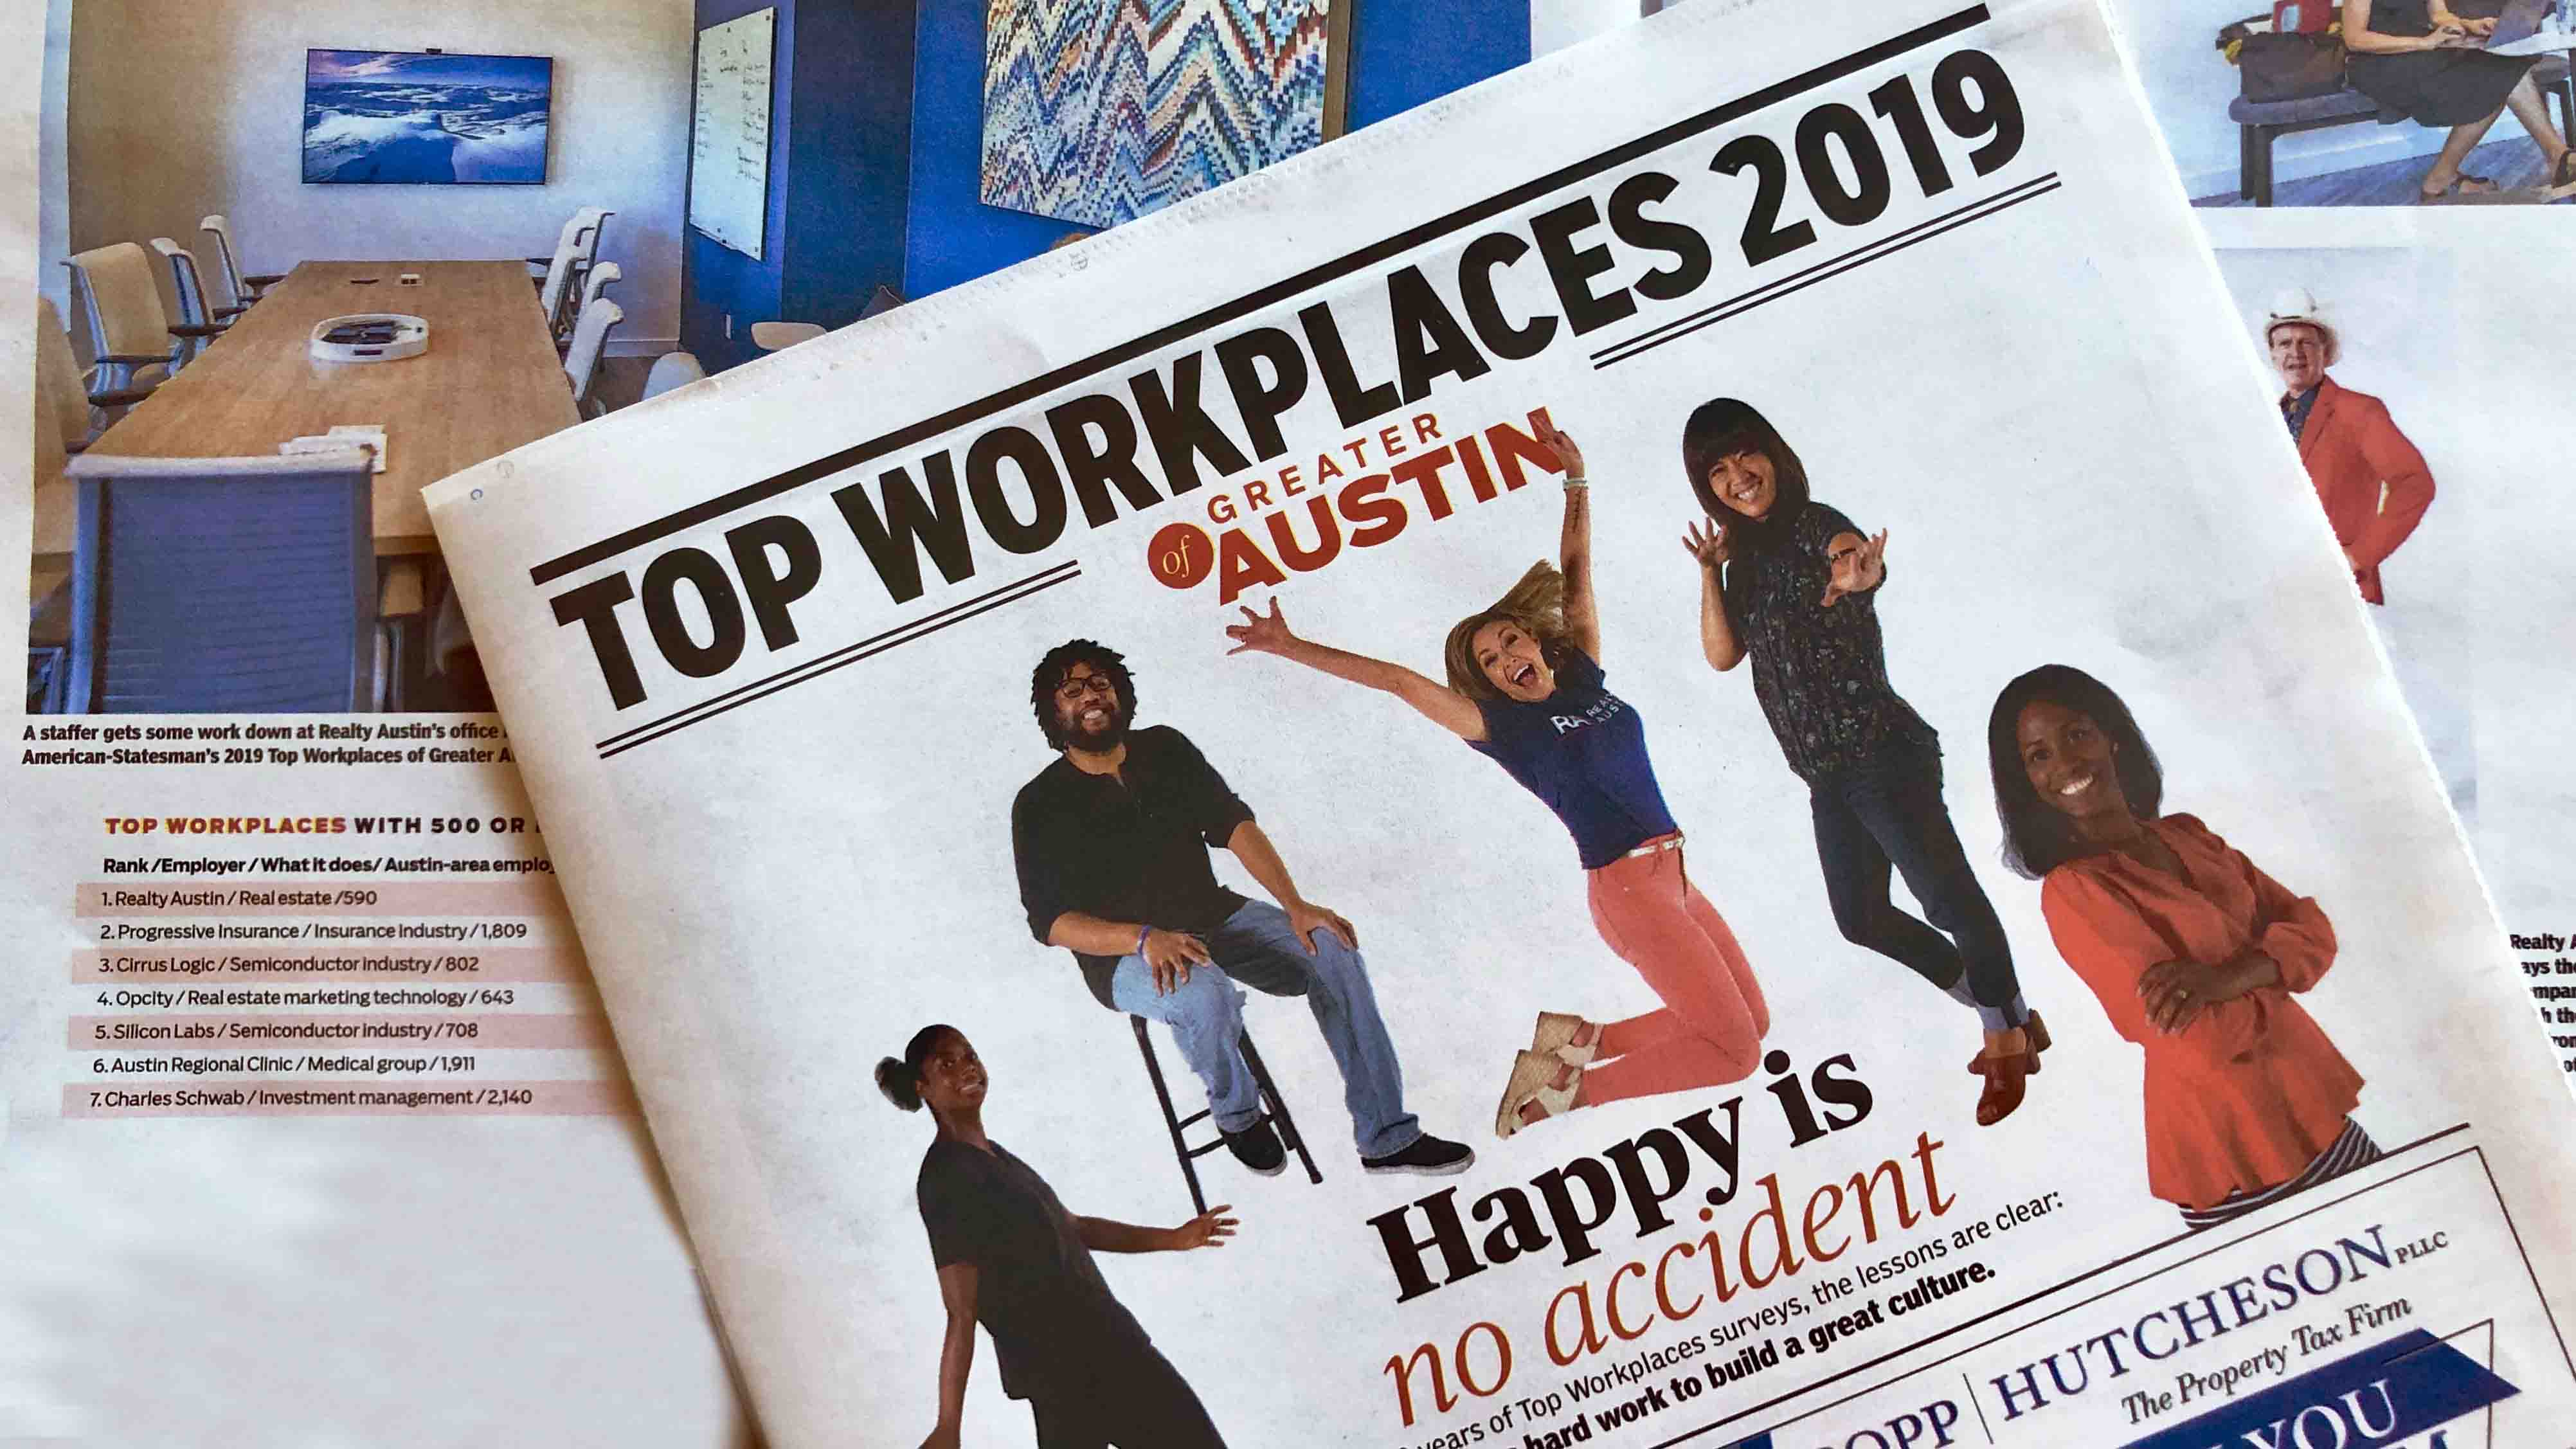 Image of No. 1 Top Workplace